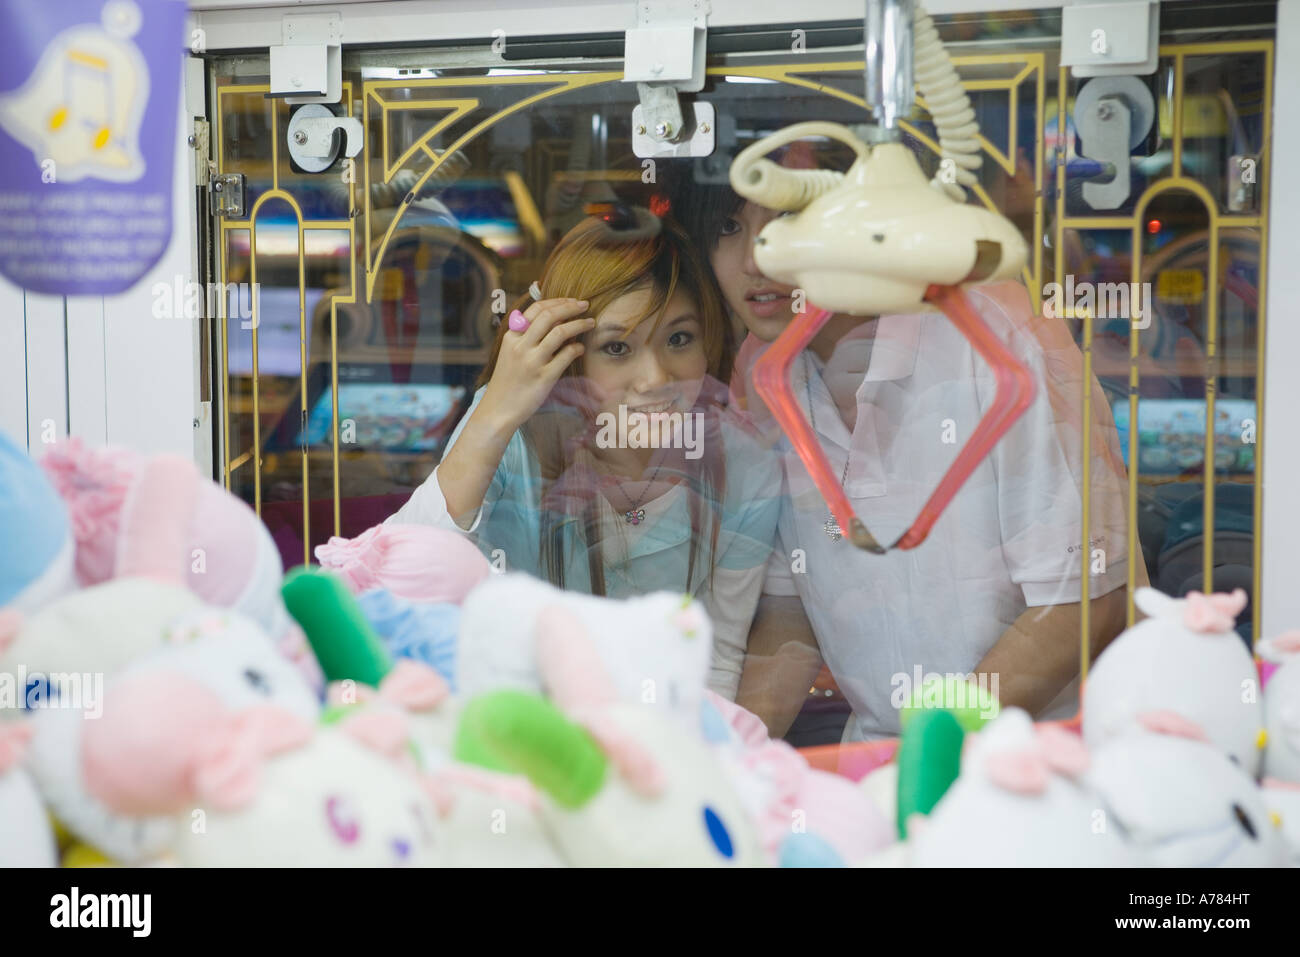 Teenage couple looking at toy grabbing game in video arcade - Stock Image